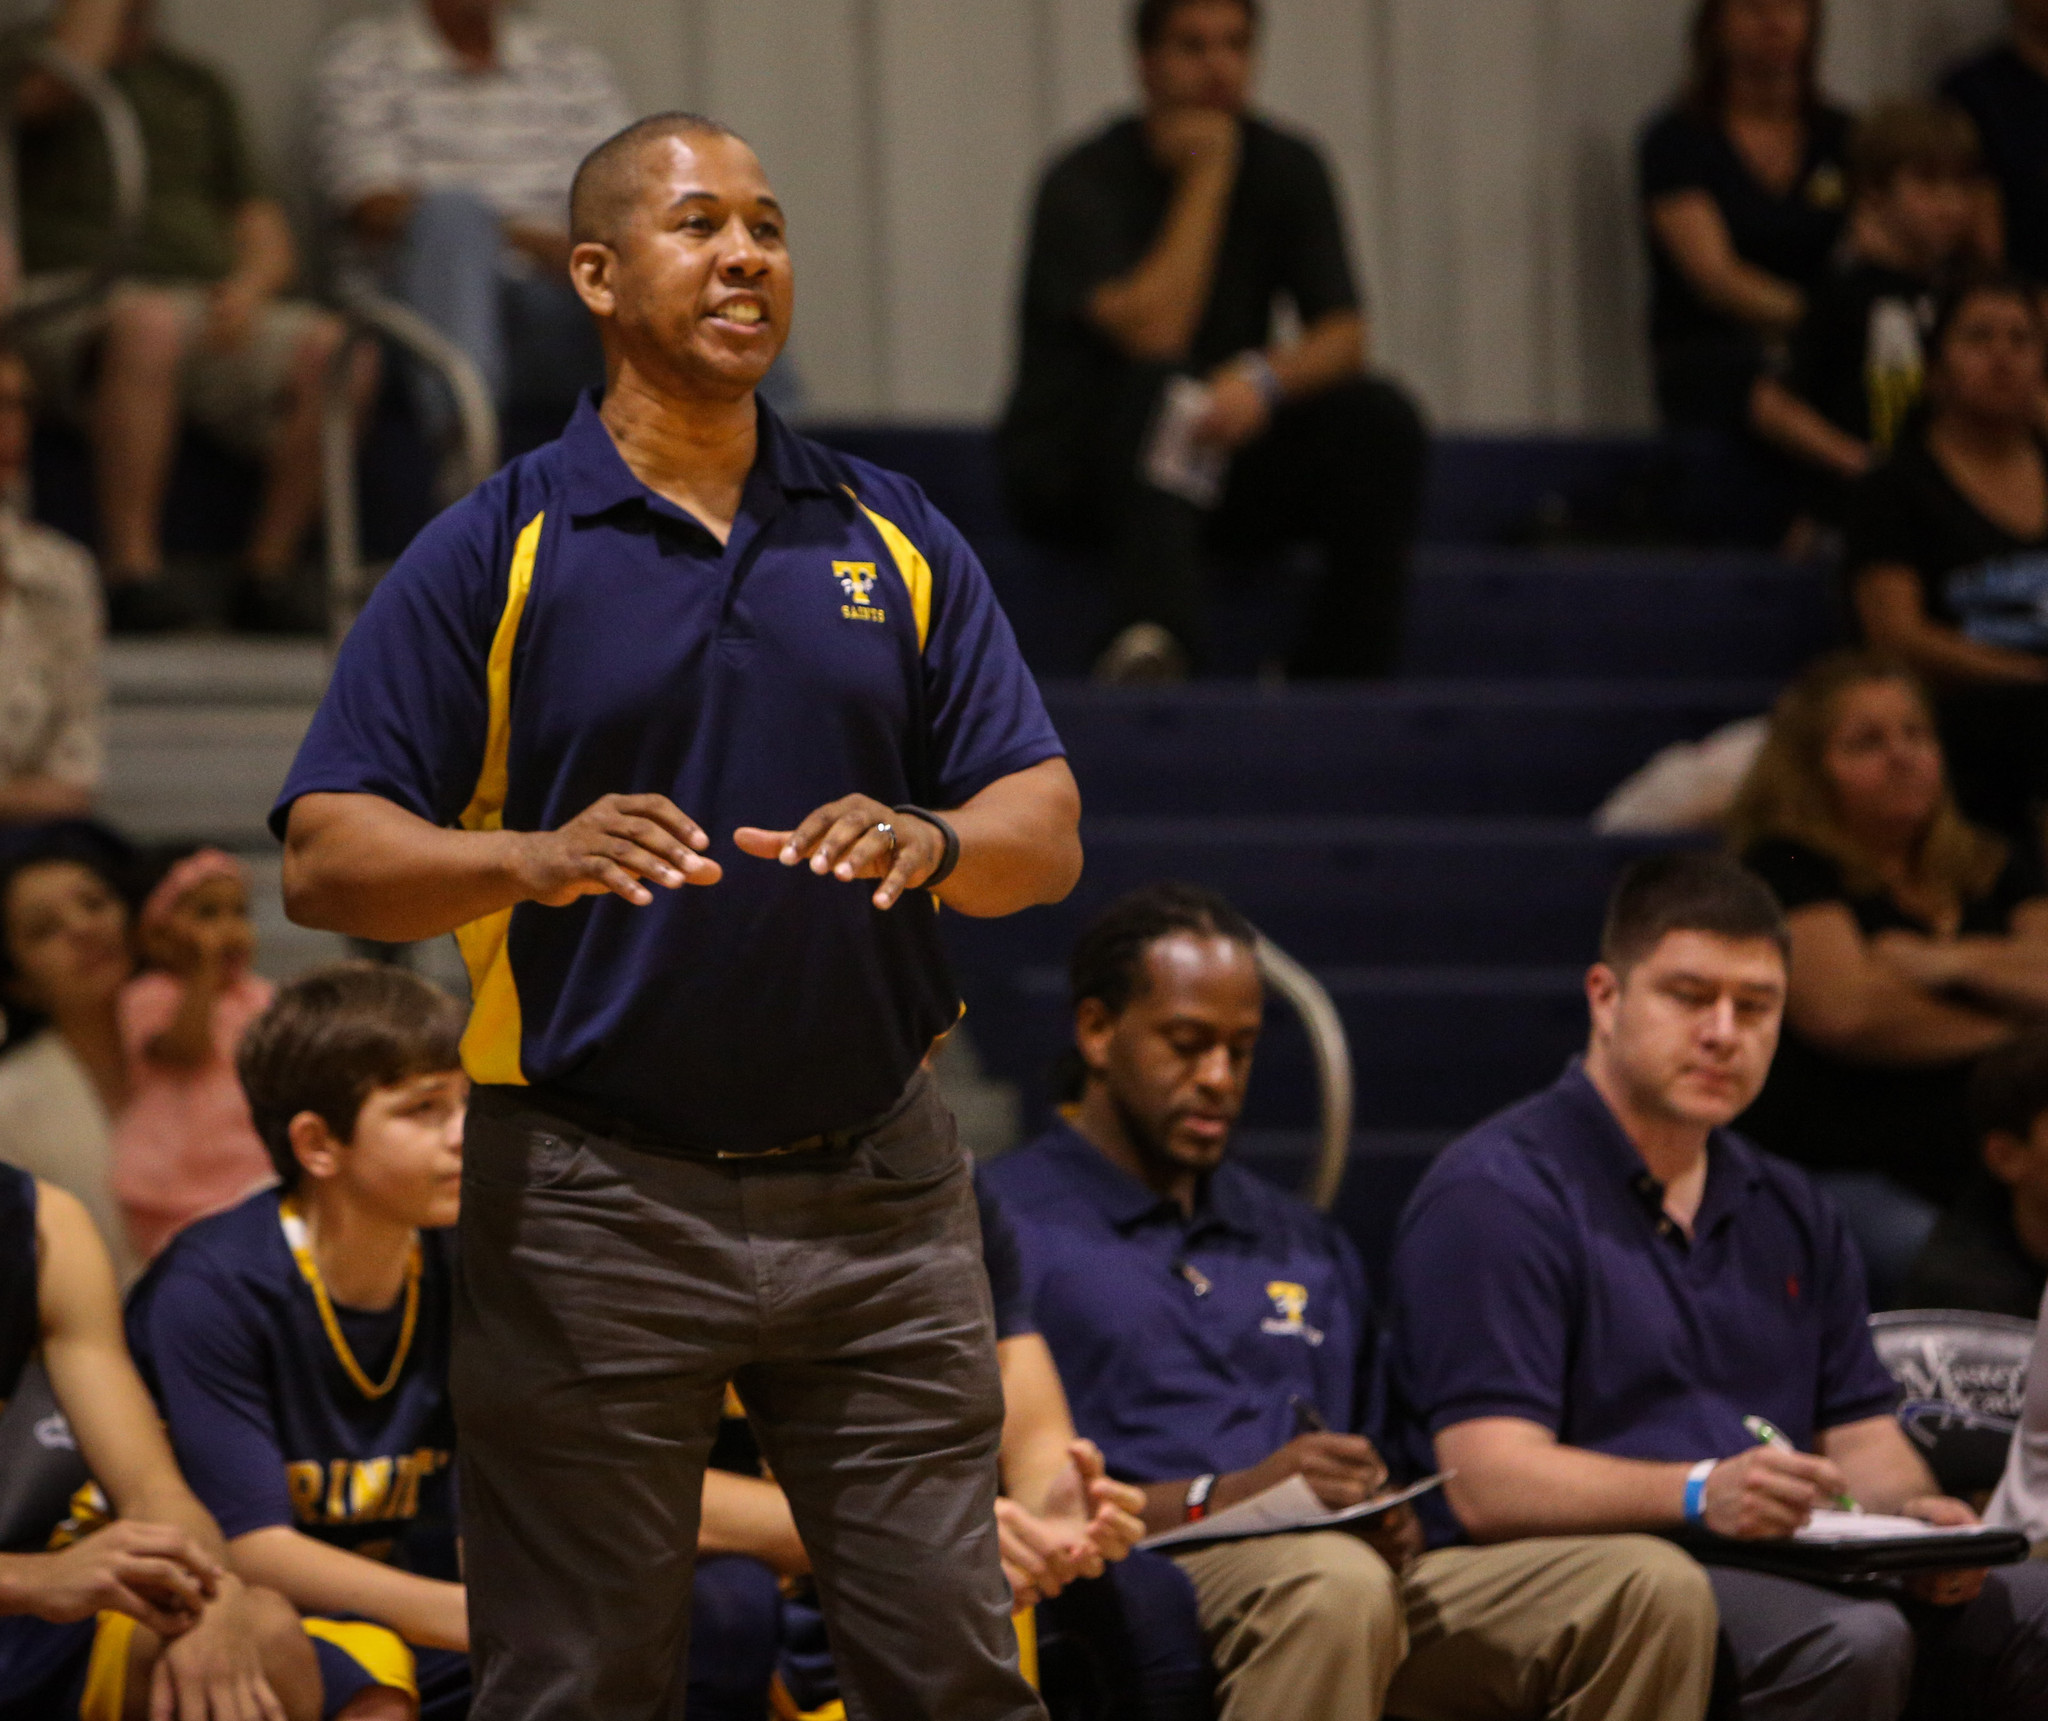 os-basketball-trinity-prep-needs-fill-in-for-coach-irwin-hudson-ocp-looking-20160315.jpg